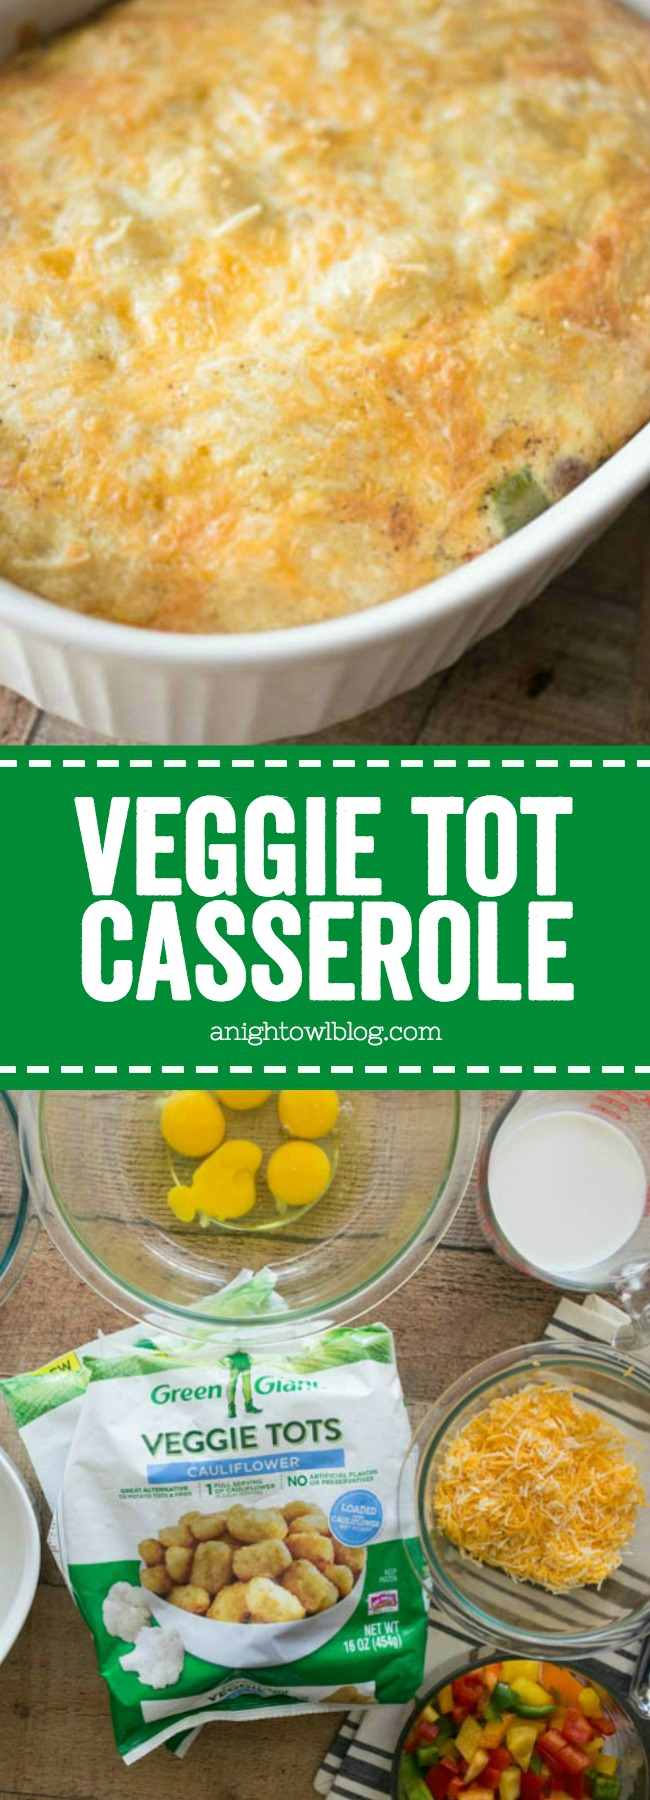 This Veggie Tot Casserole is easy and delicious! Made with Green Giant Veggie Tots, it's also packed full of veggie goodness.